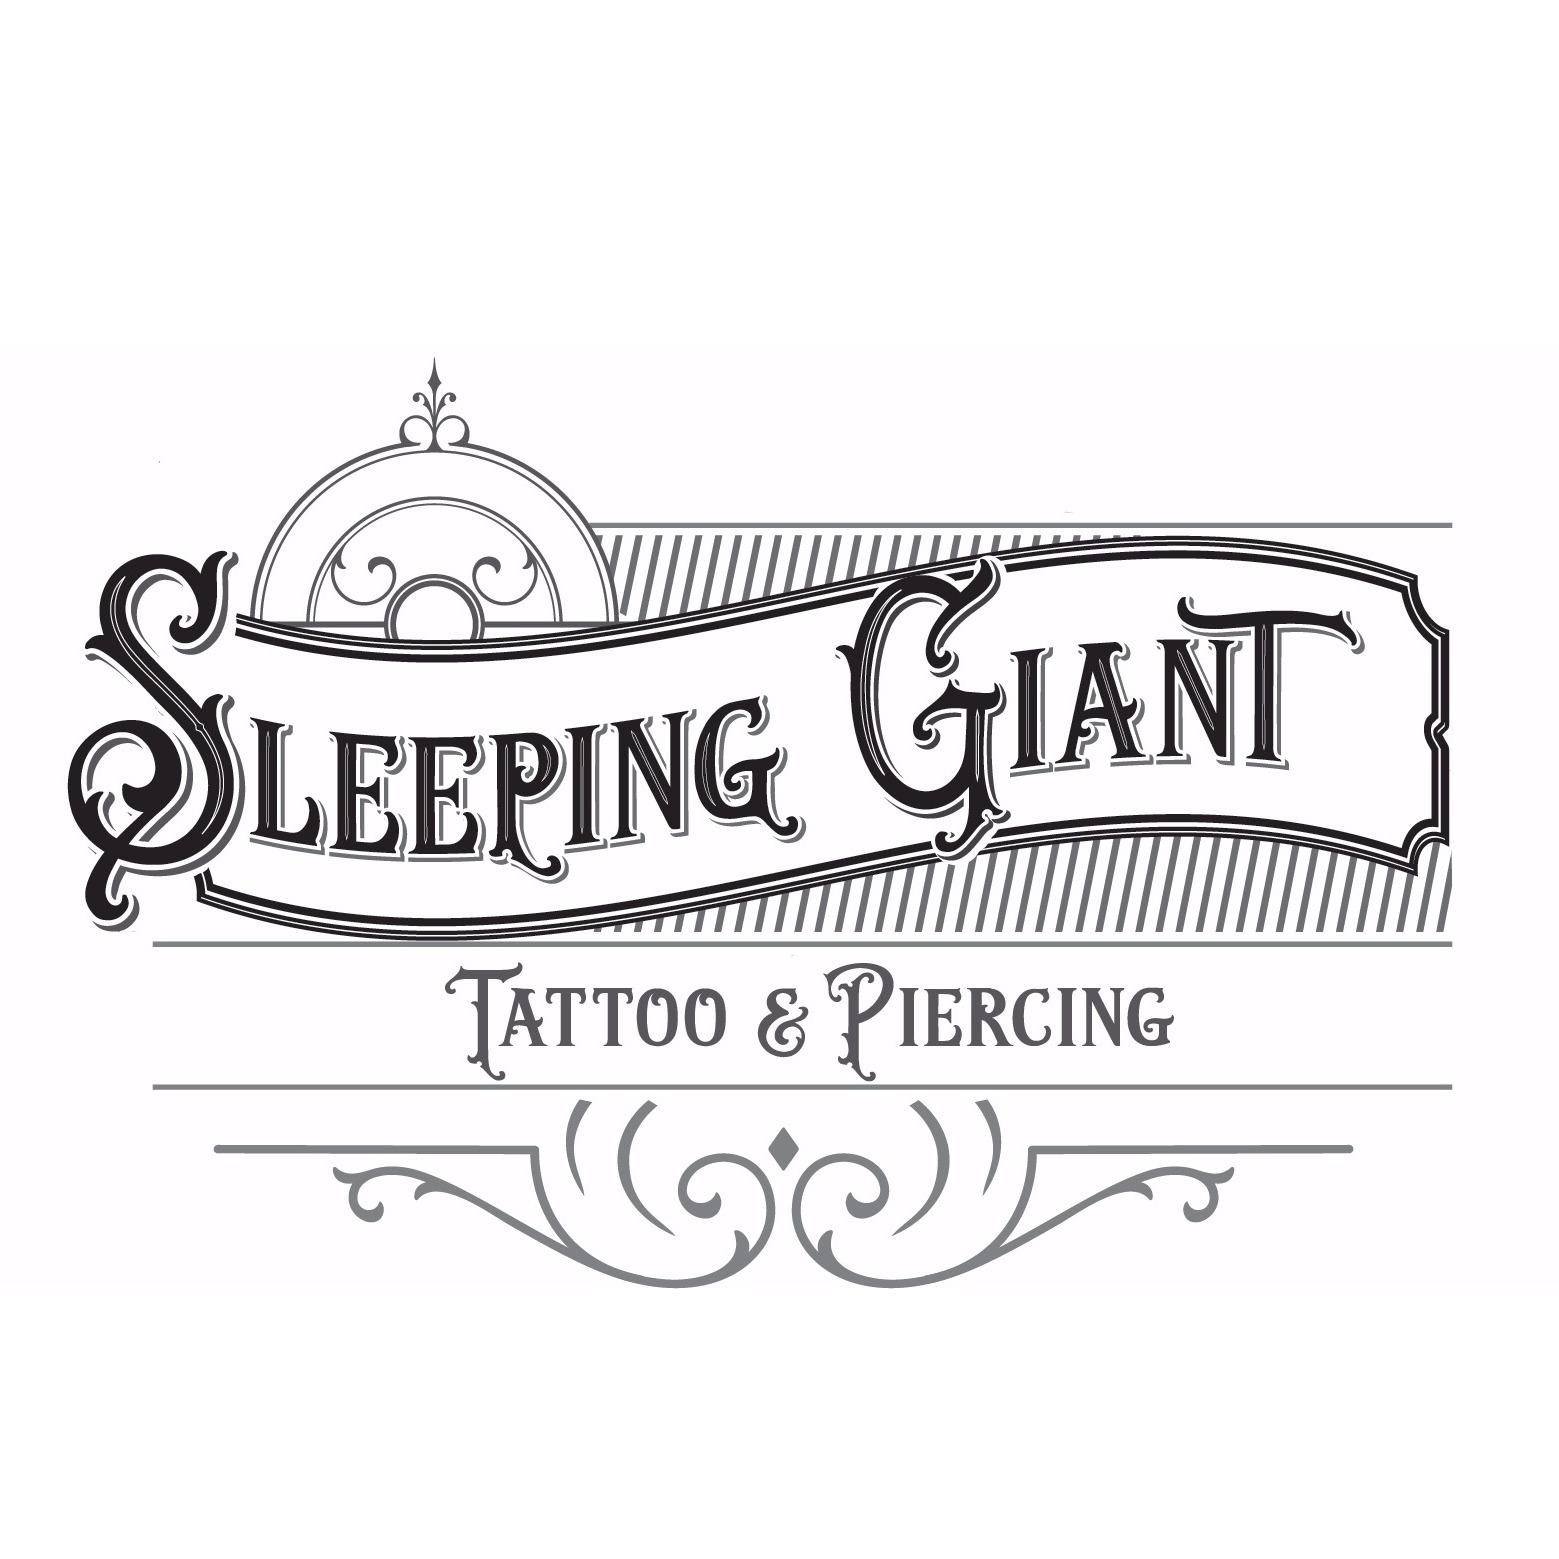 Sleeping Giant Tattoo